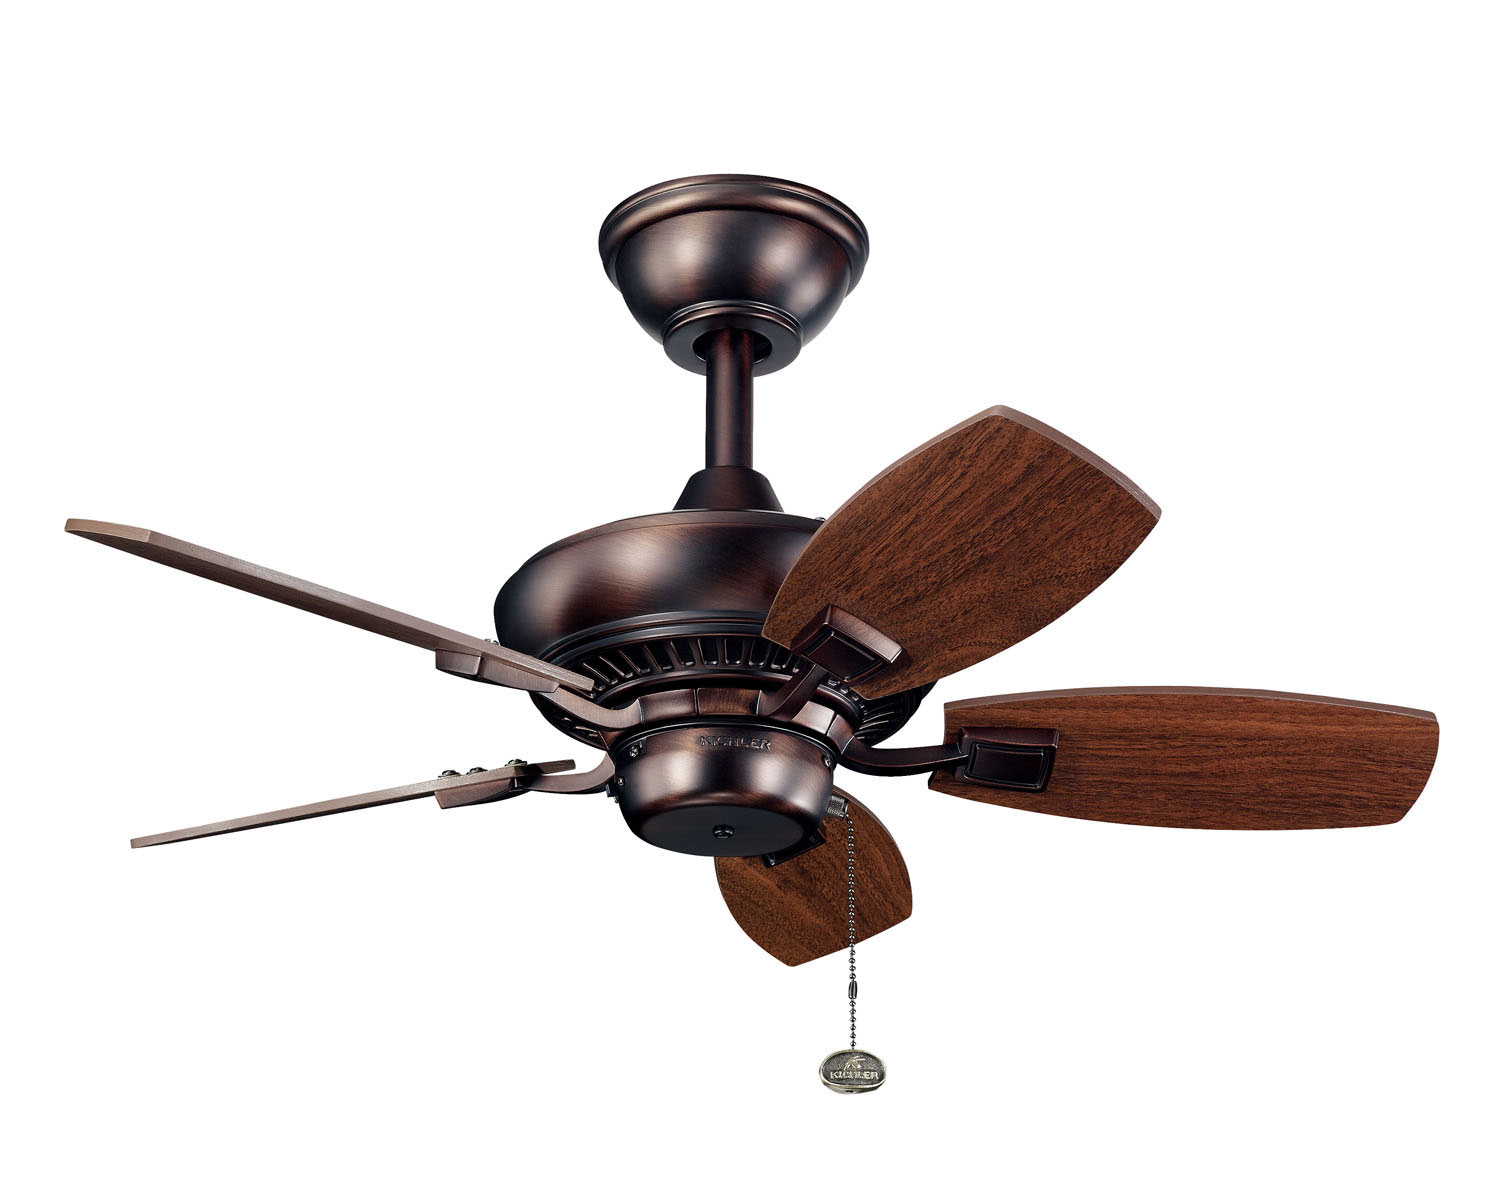 30 inchCeiling Fan from the Canfield collection by Kichler 300103OBB